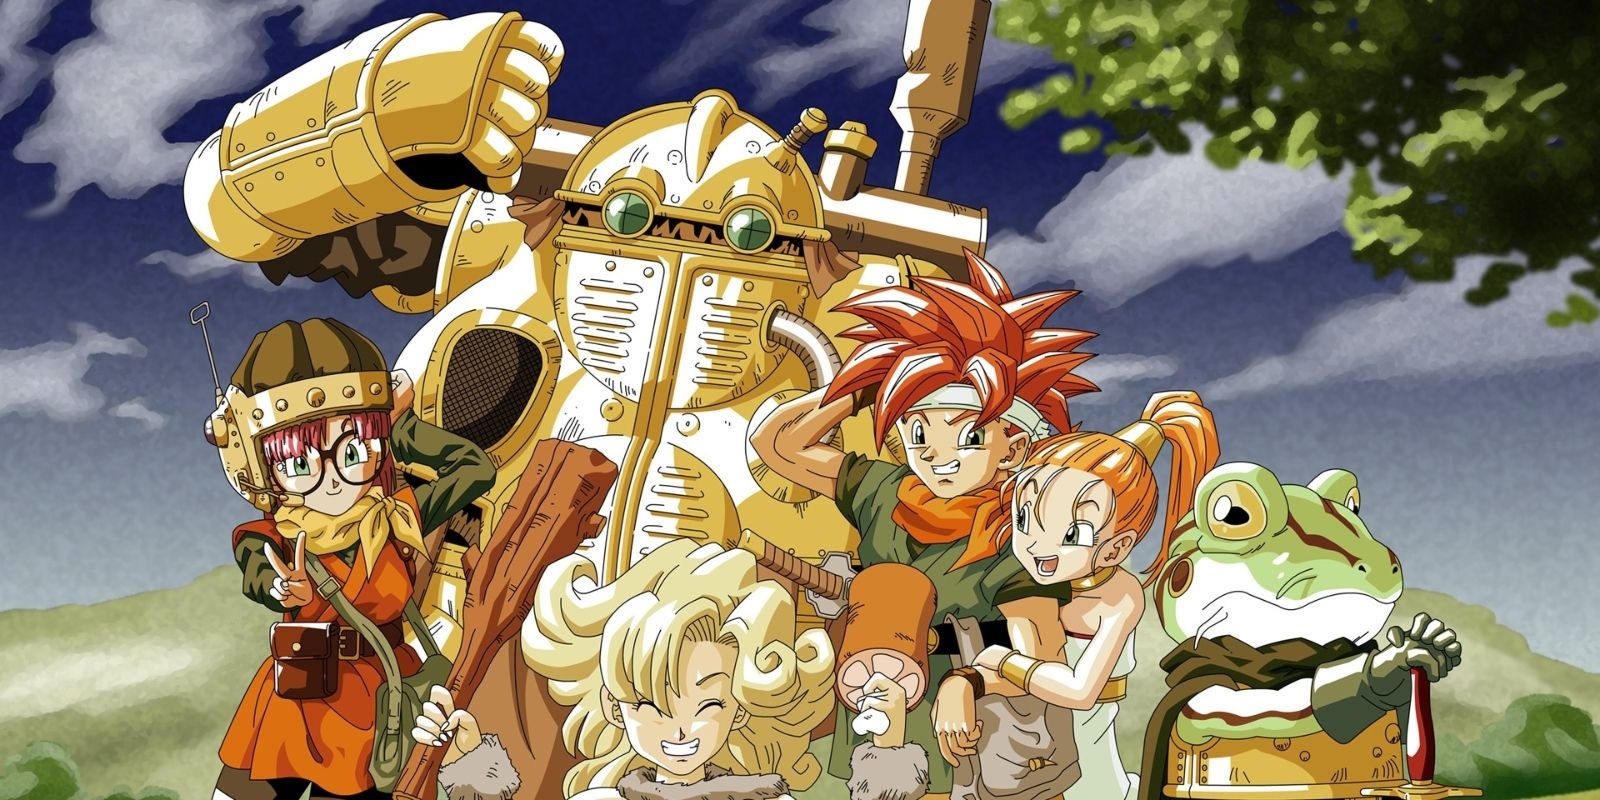 Chrono Trigger: A Forgotten Classic That Needs to Return